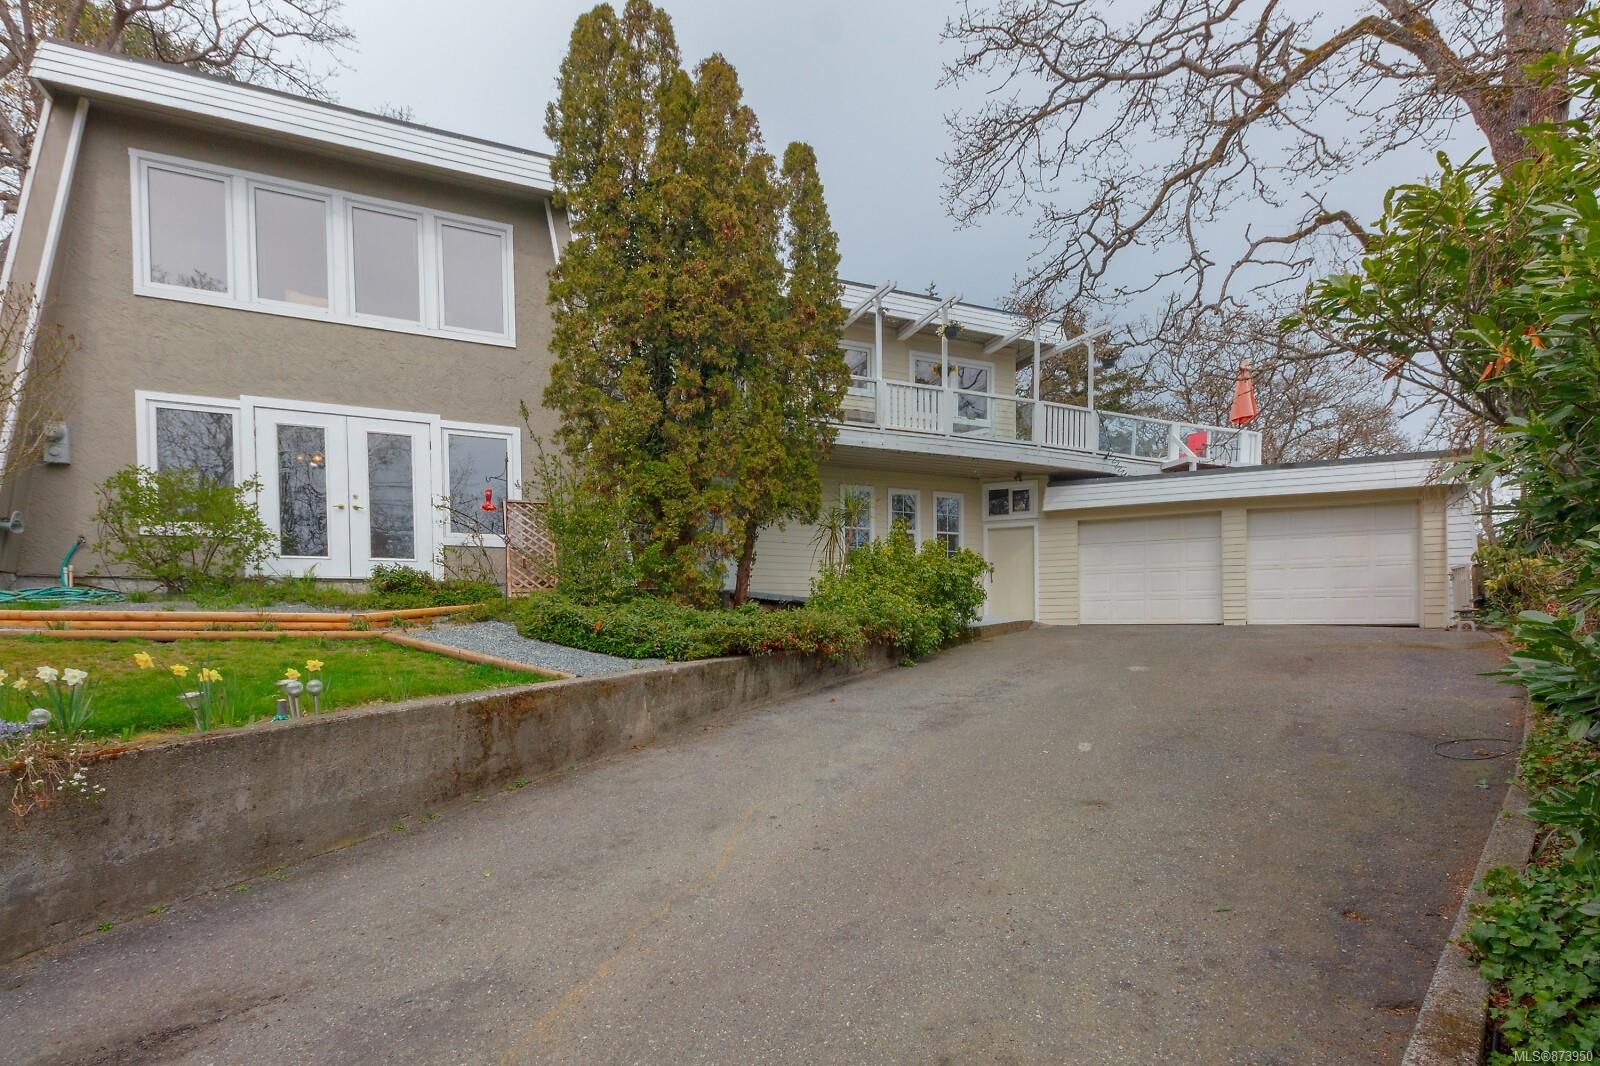 Main Photo: 1320 Queensbury Ave in : SE Maplewood House for sale (Saanich East)  : MLS®# 873950